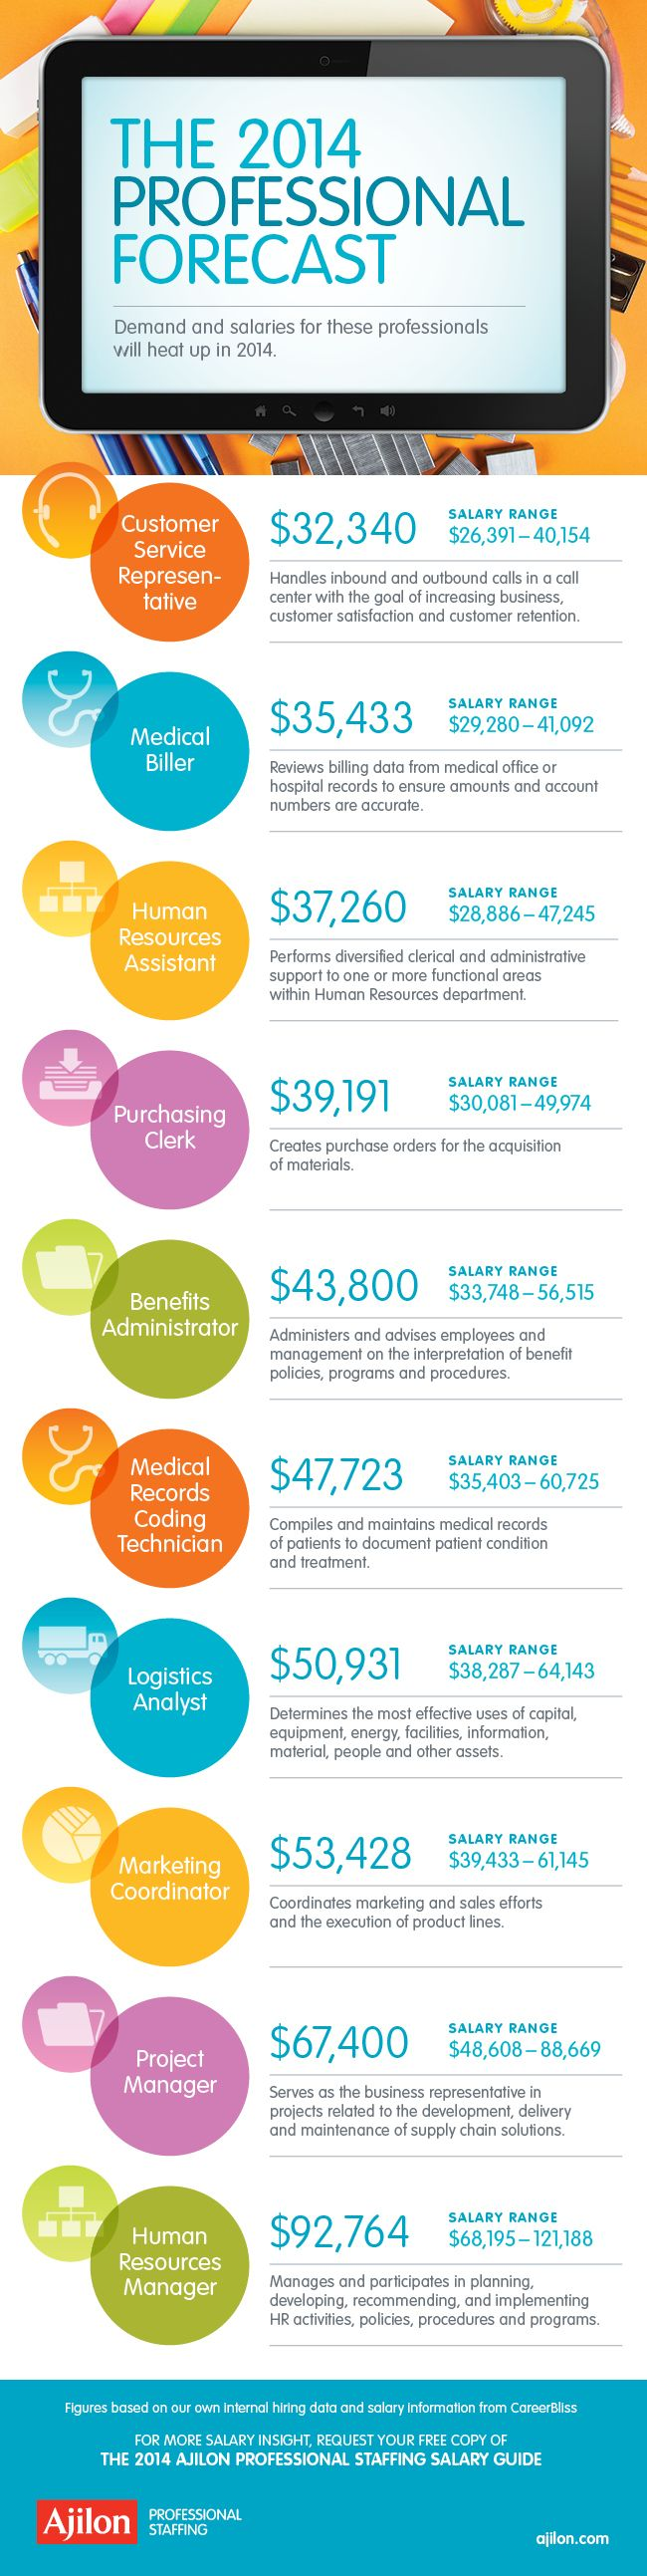 images about ajilon s salary guide helpful the ajilon professional staffing salary guide infographic lists the top in demand positions for 2014